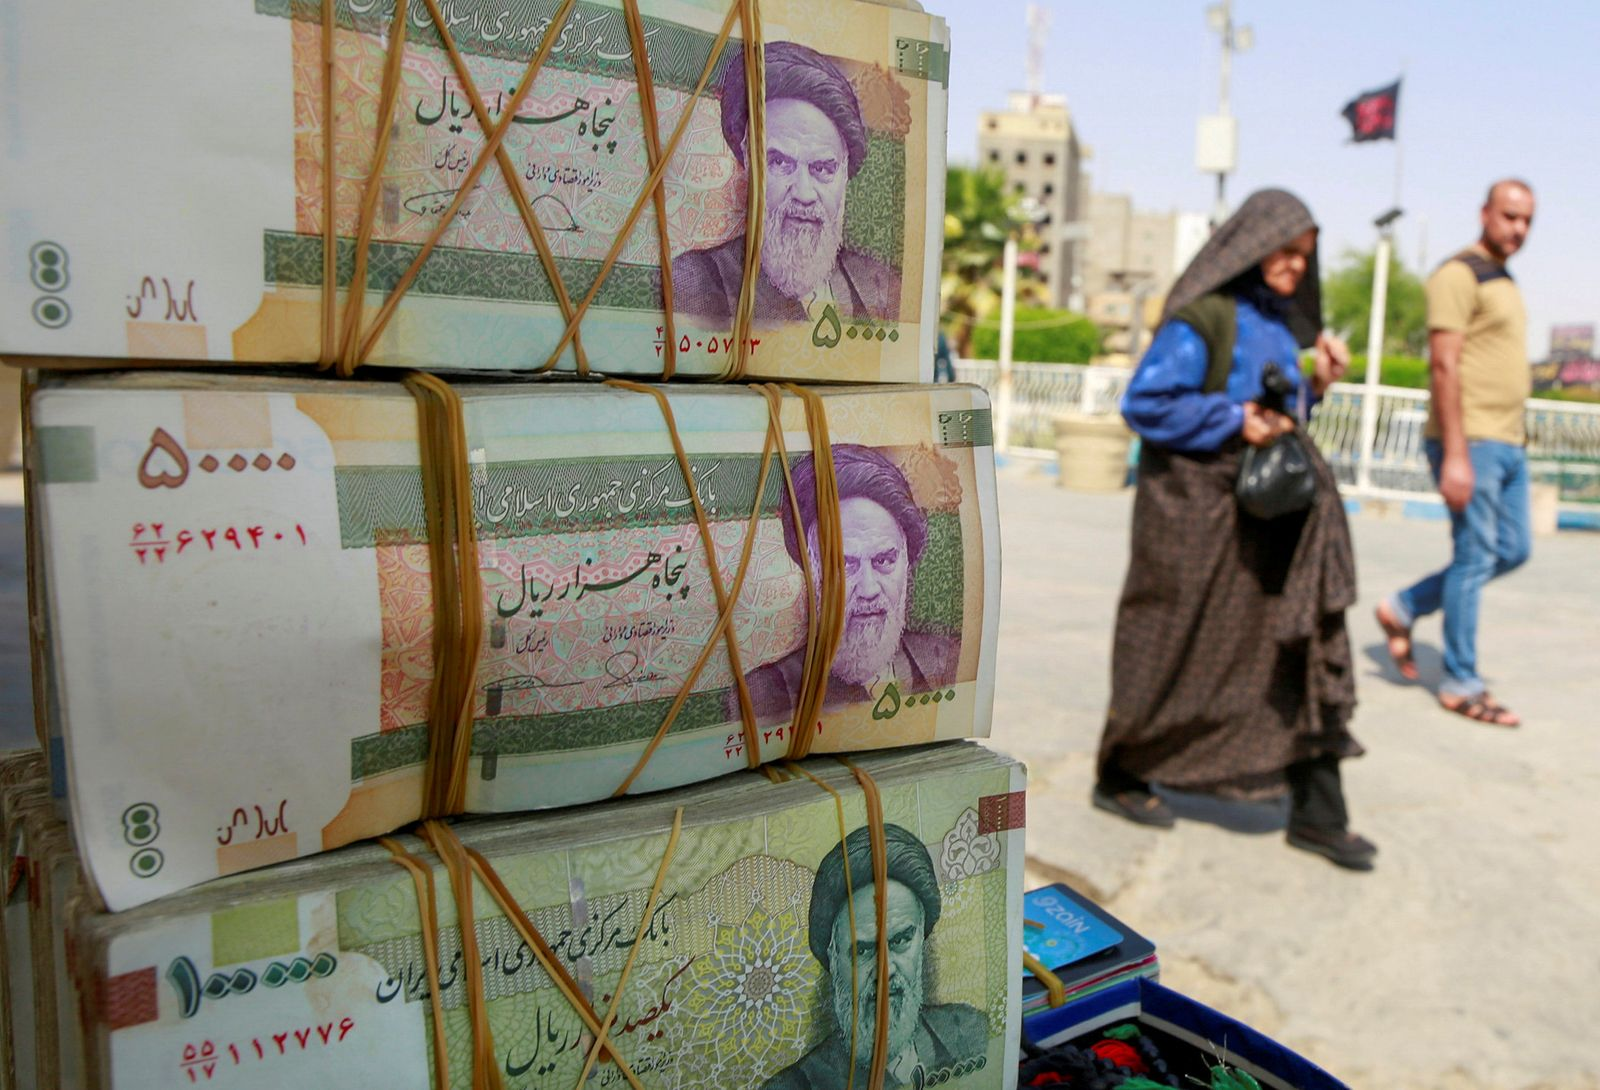 FILE PHOTO: Iranian rial currency notes are seen at a market in the holy Shi'ite city of Najaf